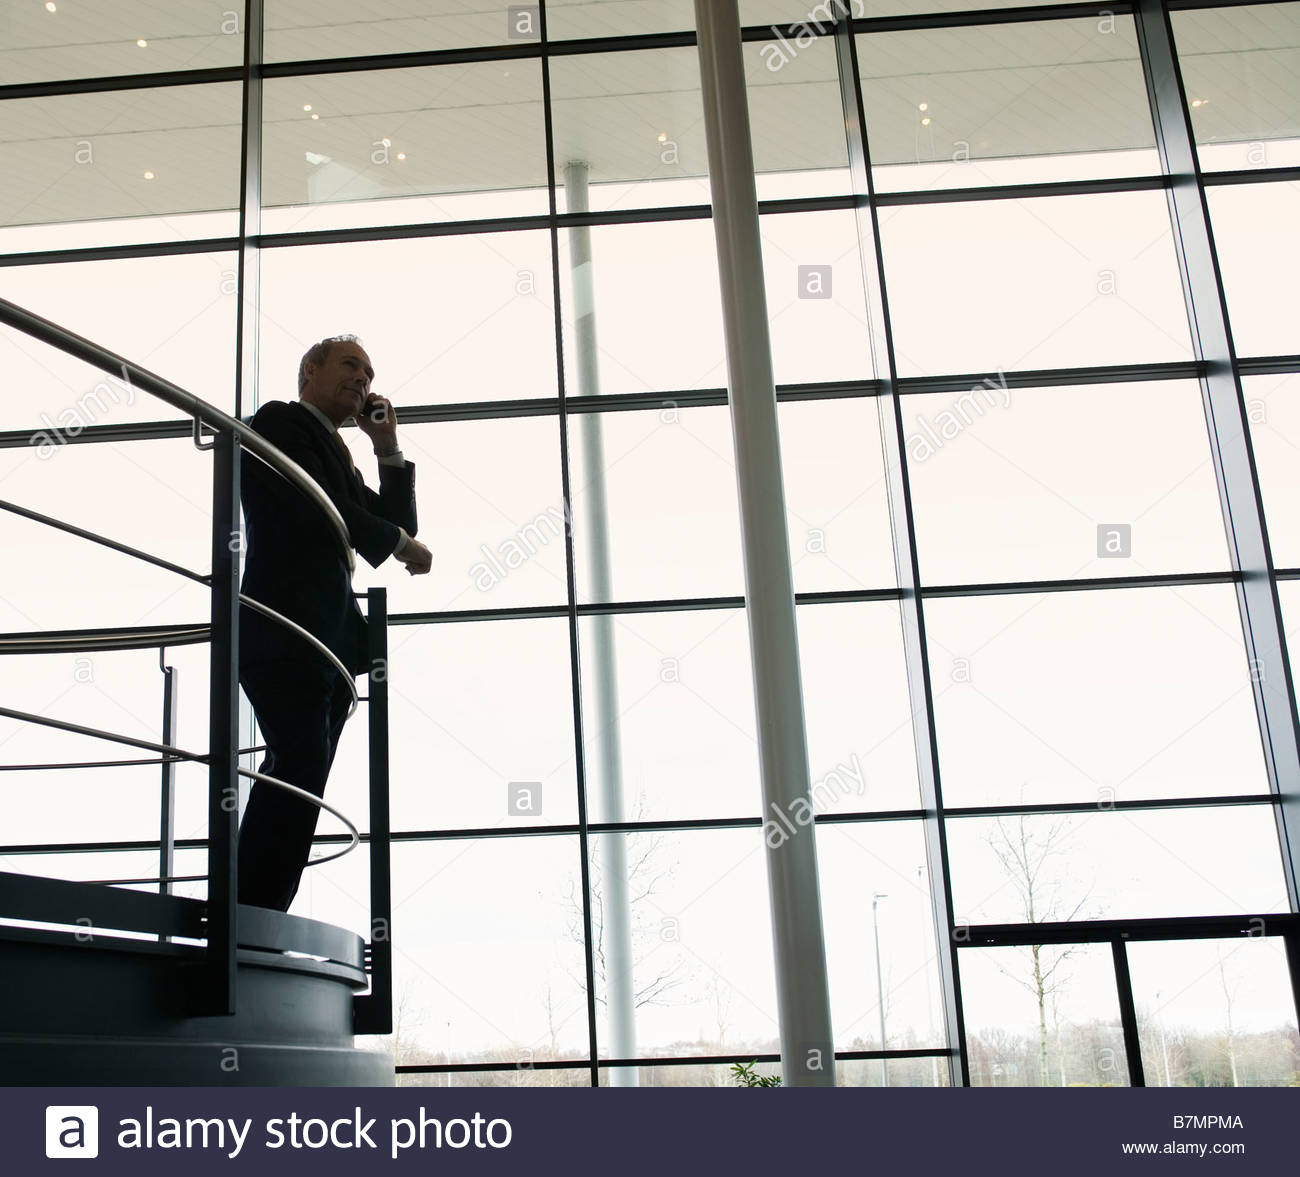 A businessman talking on a mobile phone in a modern office building - Stock Image